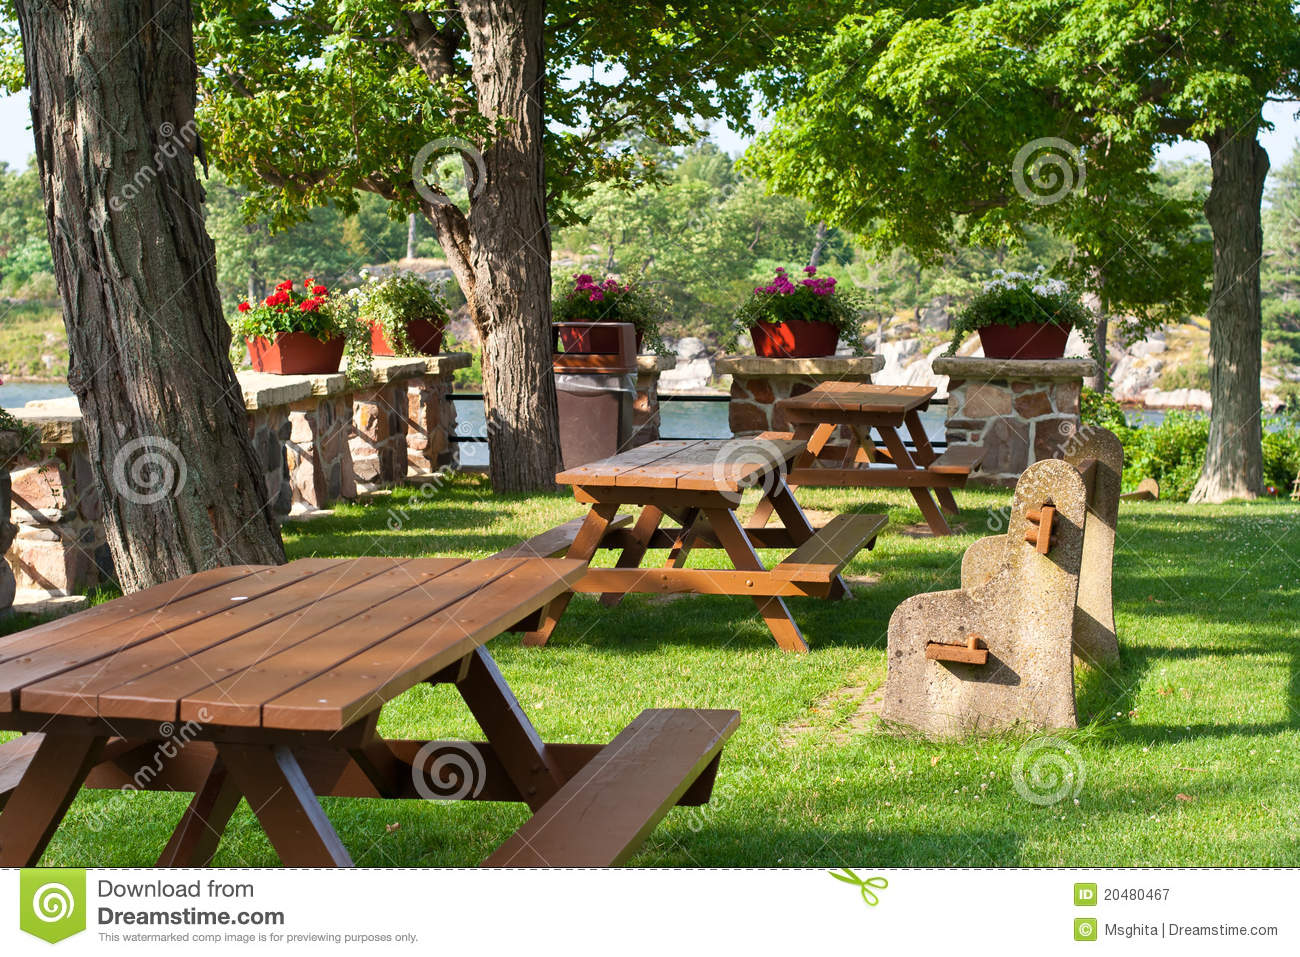 Picnic Area 2 Royalty Free Stock Photography - Image: 20480467